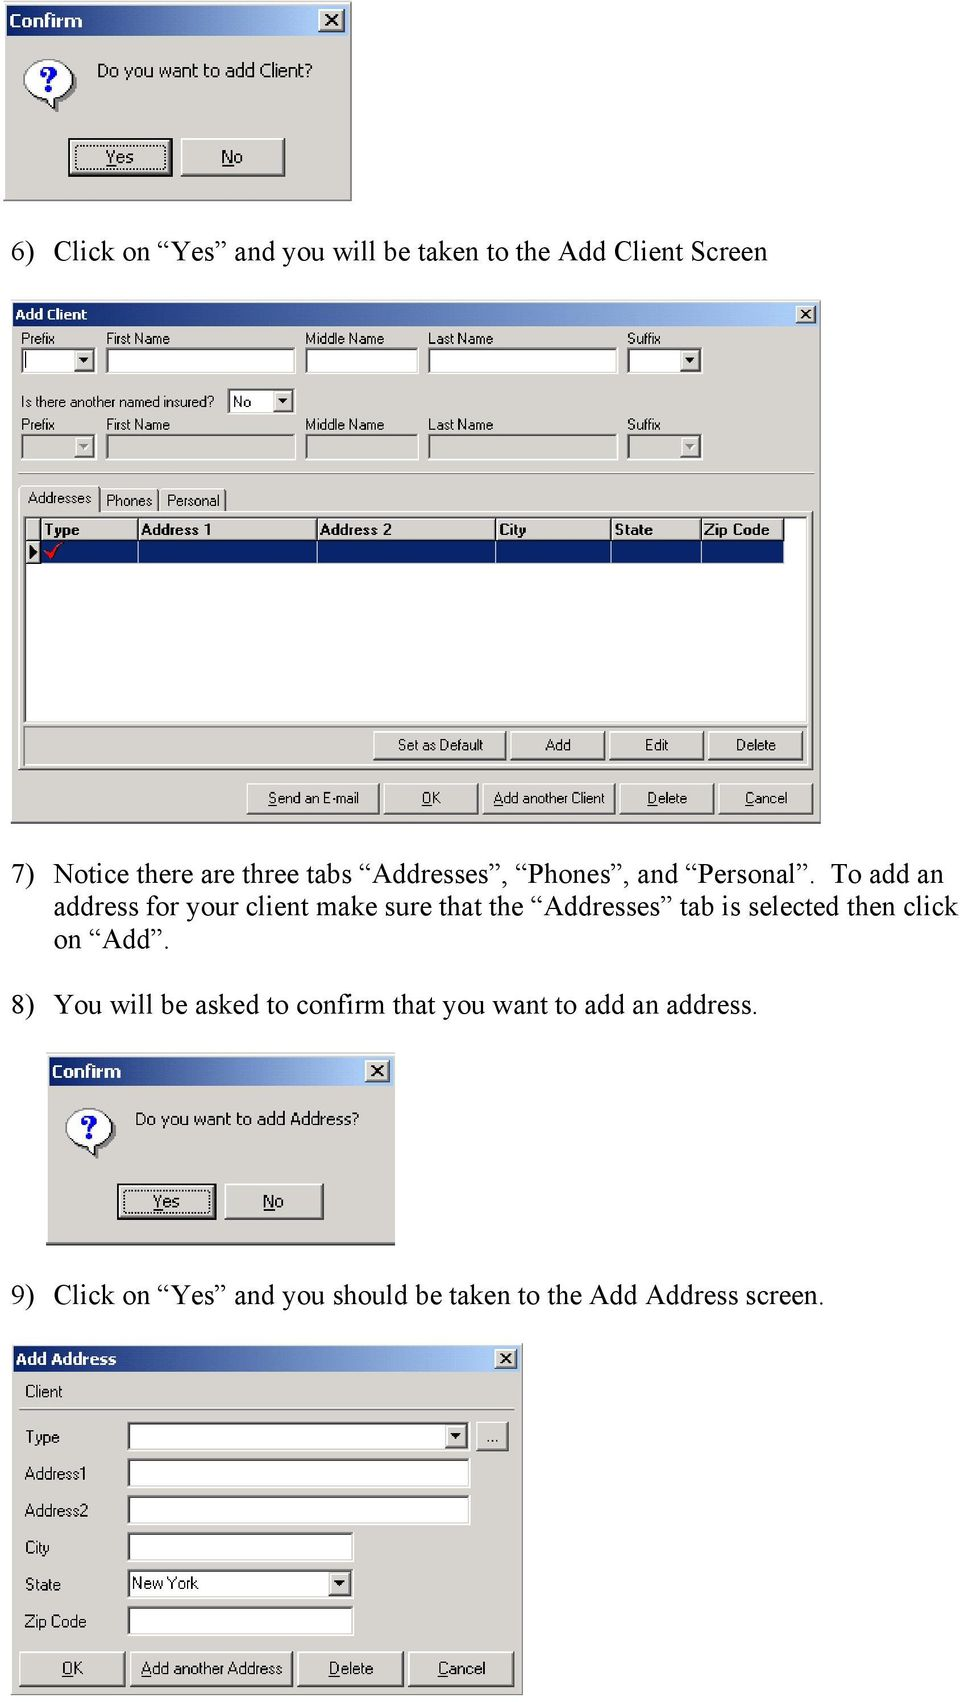 To add an address for your client make sure that the Addresses tab is selected then